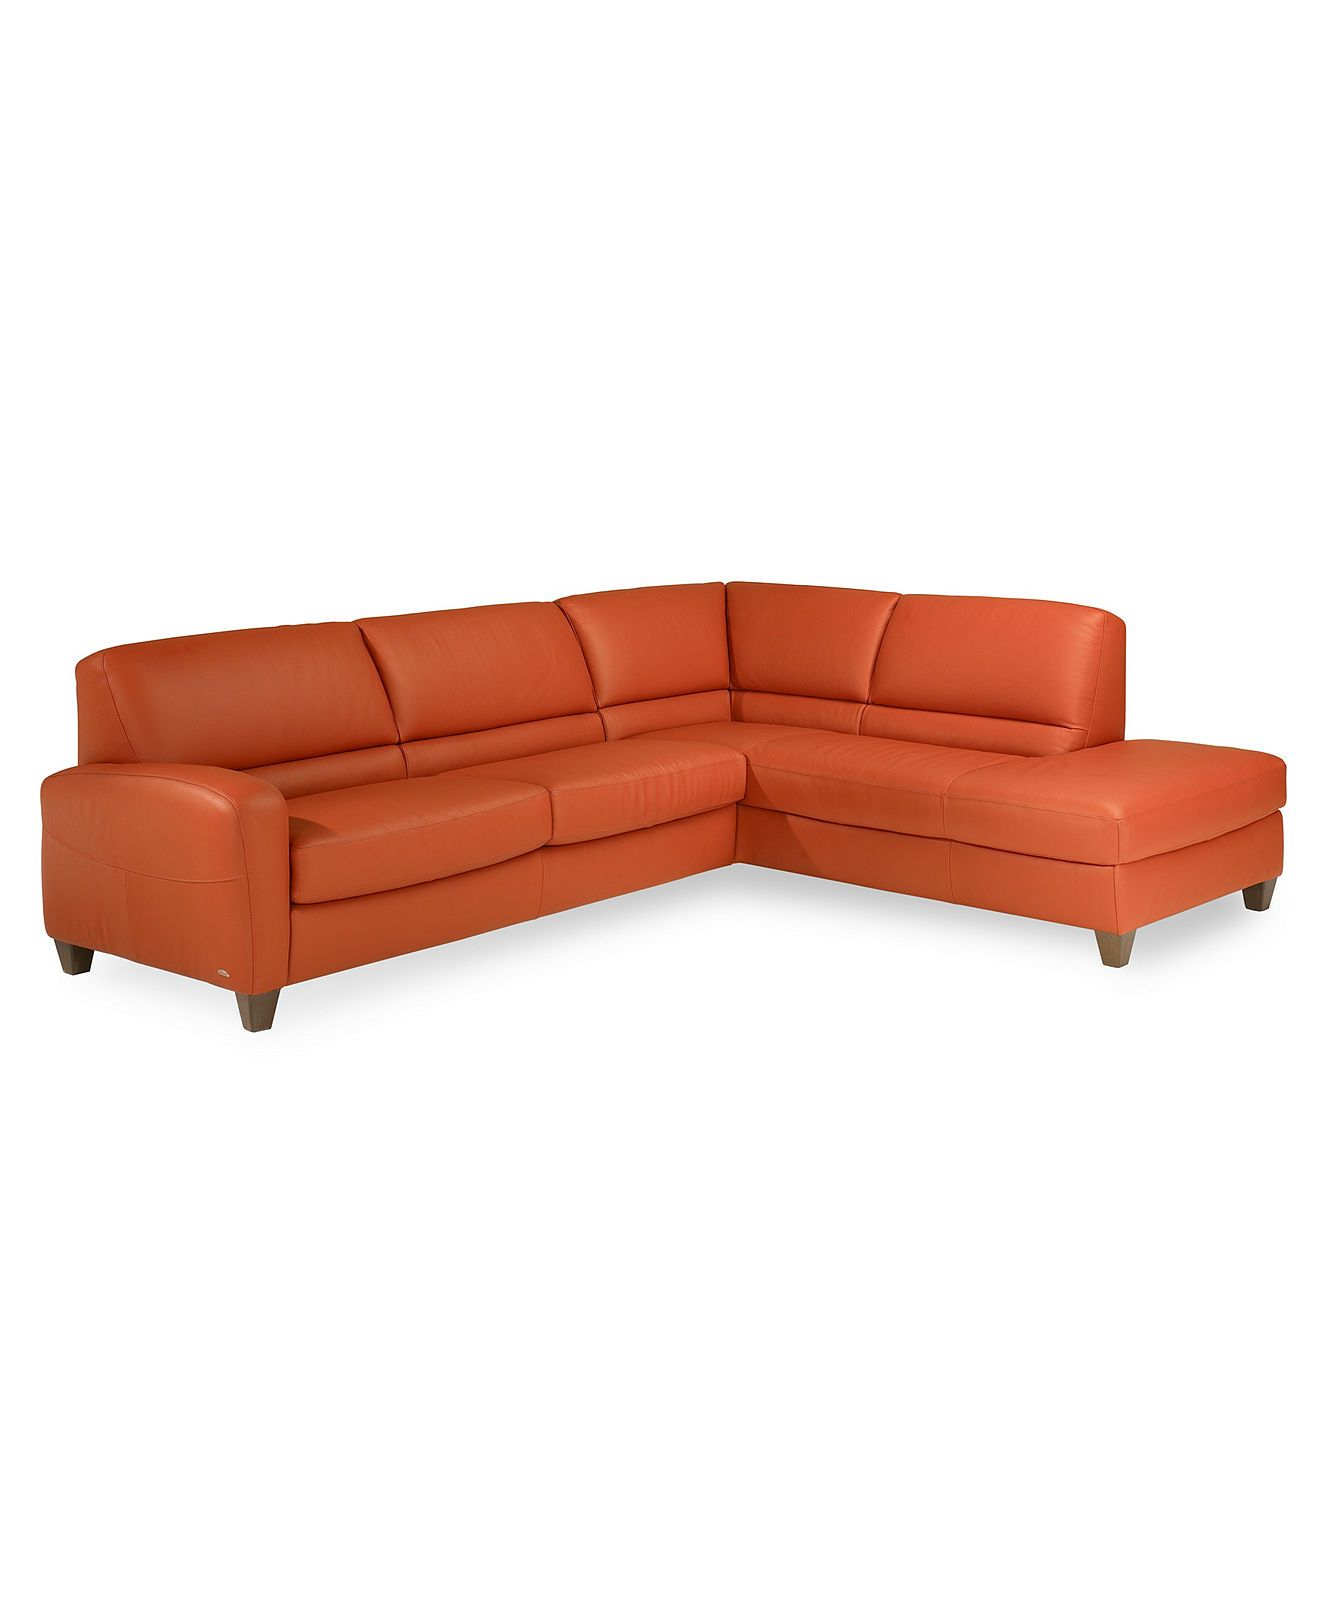 italsofa | 144 [LR] | Leather sectional sofas, Sectional sofa ...